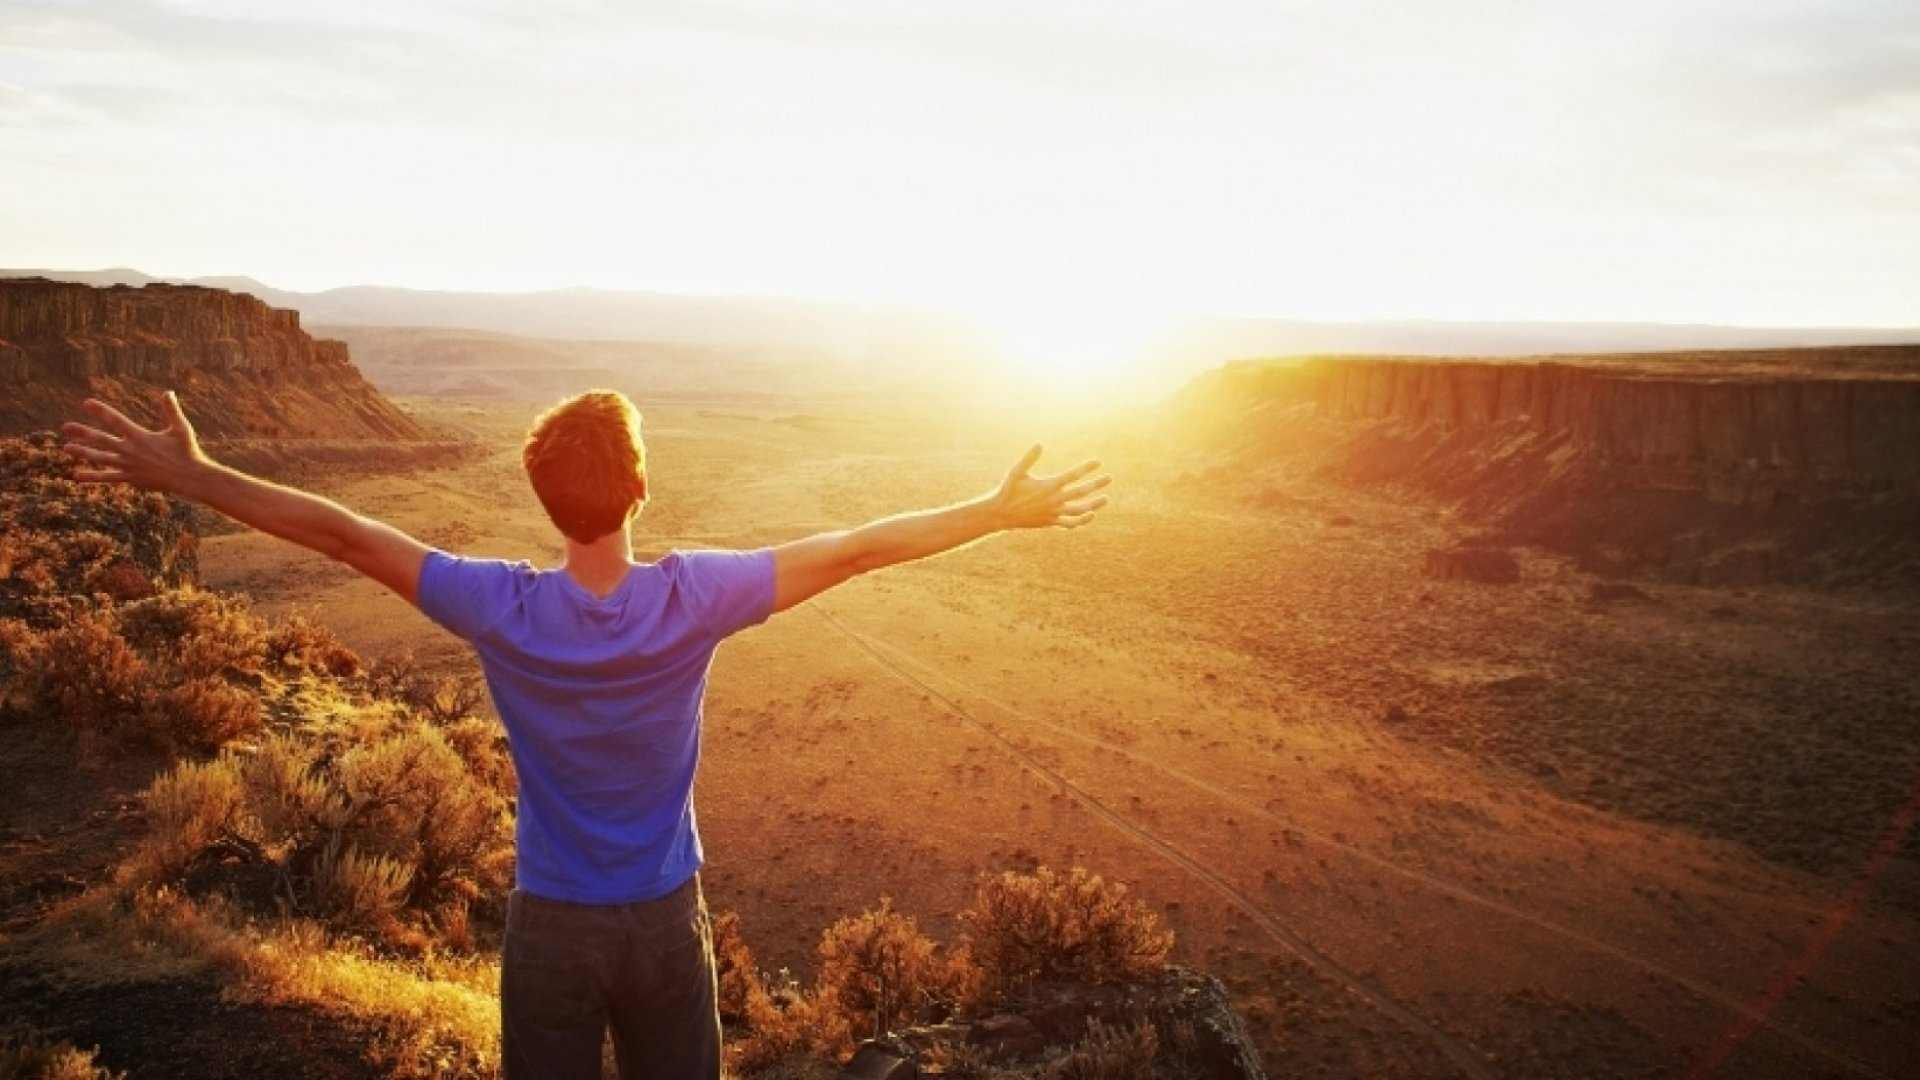 How To Live a Life With No Regrets